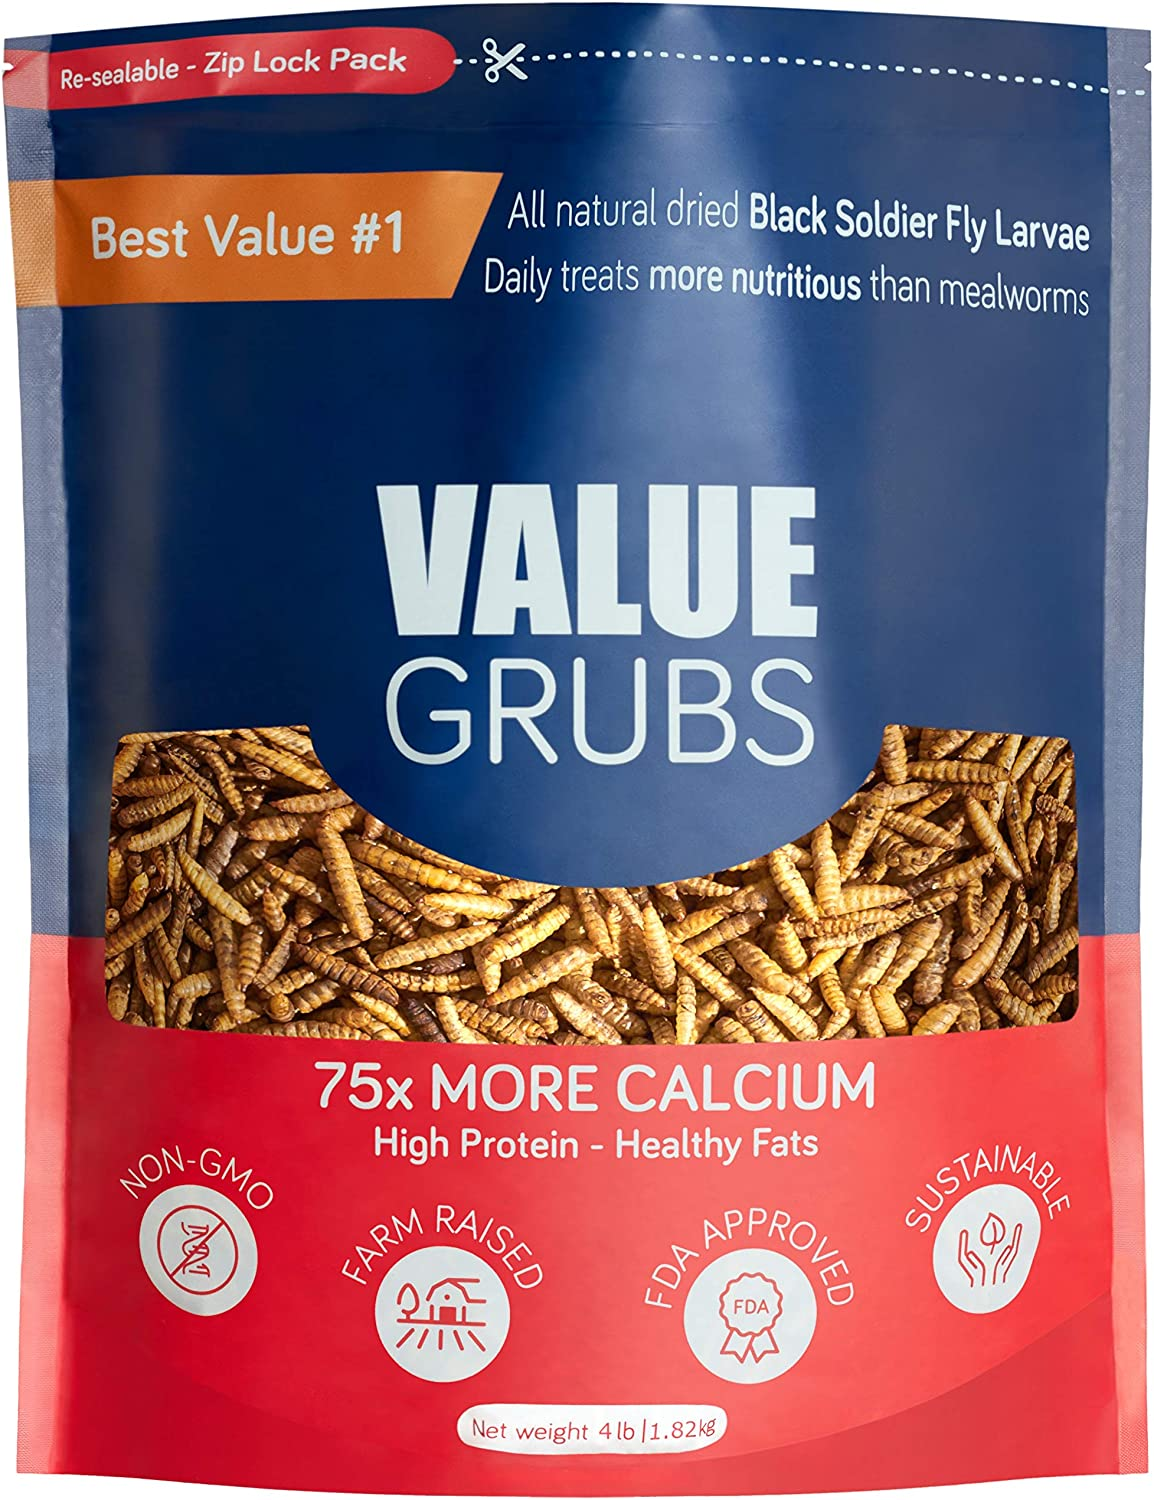 Value Grubs 4 lbs - Better Than Dried Mealworms for Chickens - Non-GMO & 75X More Calcium Than Meal Worms - Chicken Feed & Molting Supplement - BSF Larvae Treats for Hens, Ducks, Birds